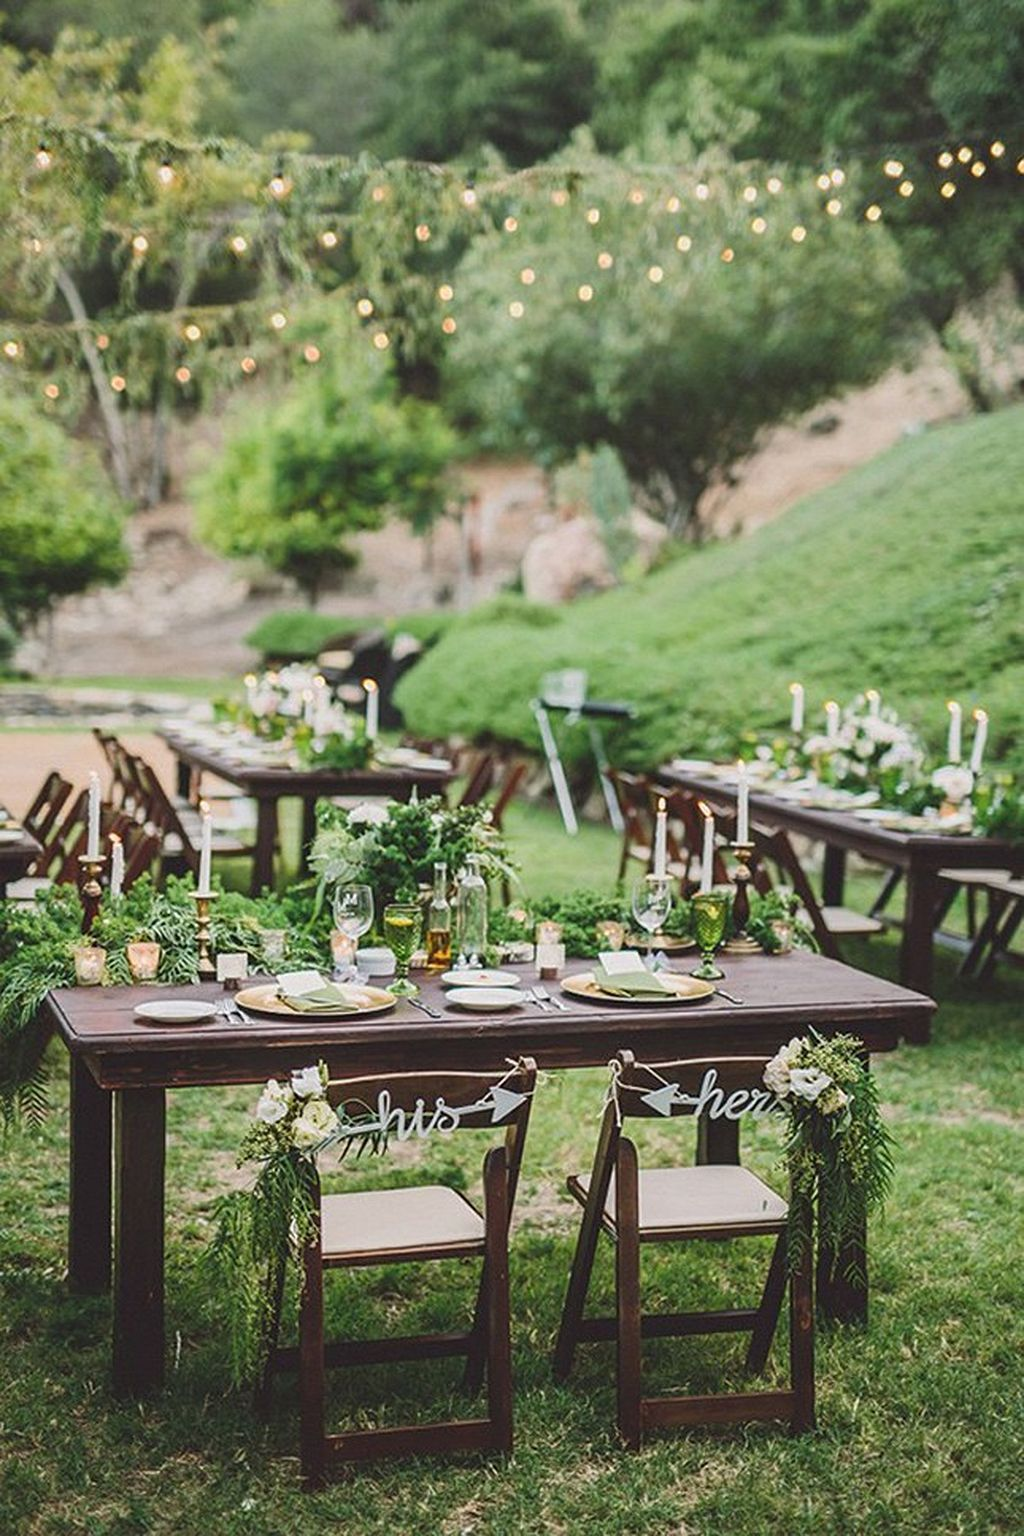 100 Beautiful Garden Wedding Ideas | Pinterest | Weddings, Wedding ...